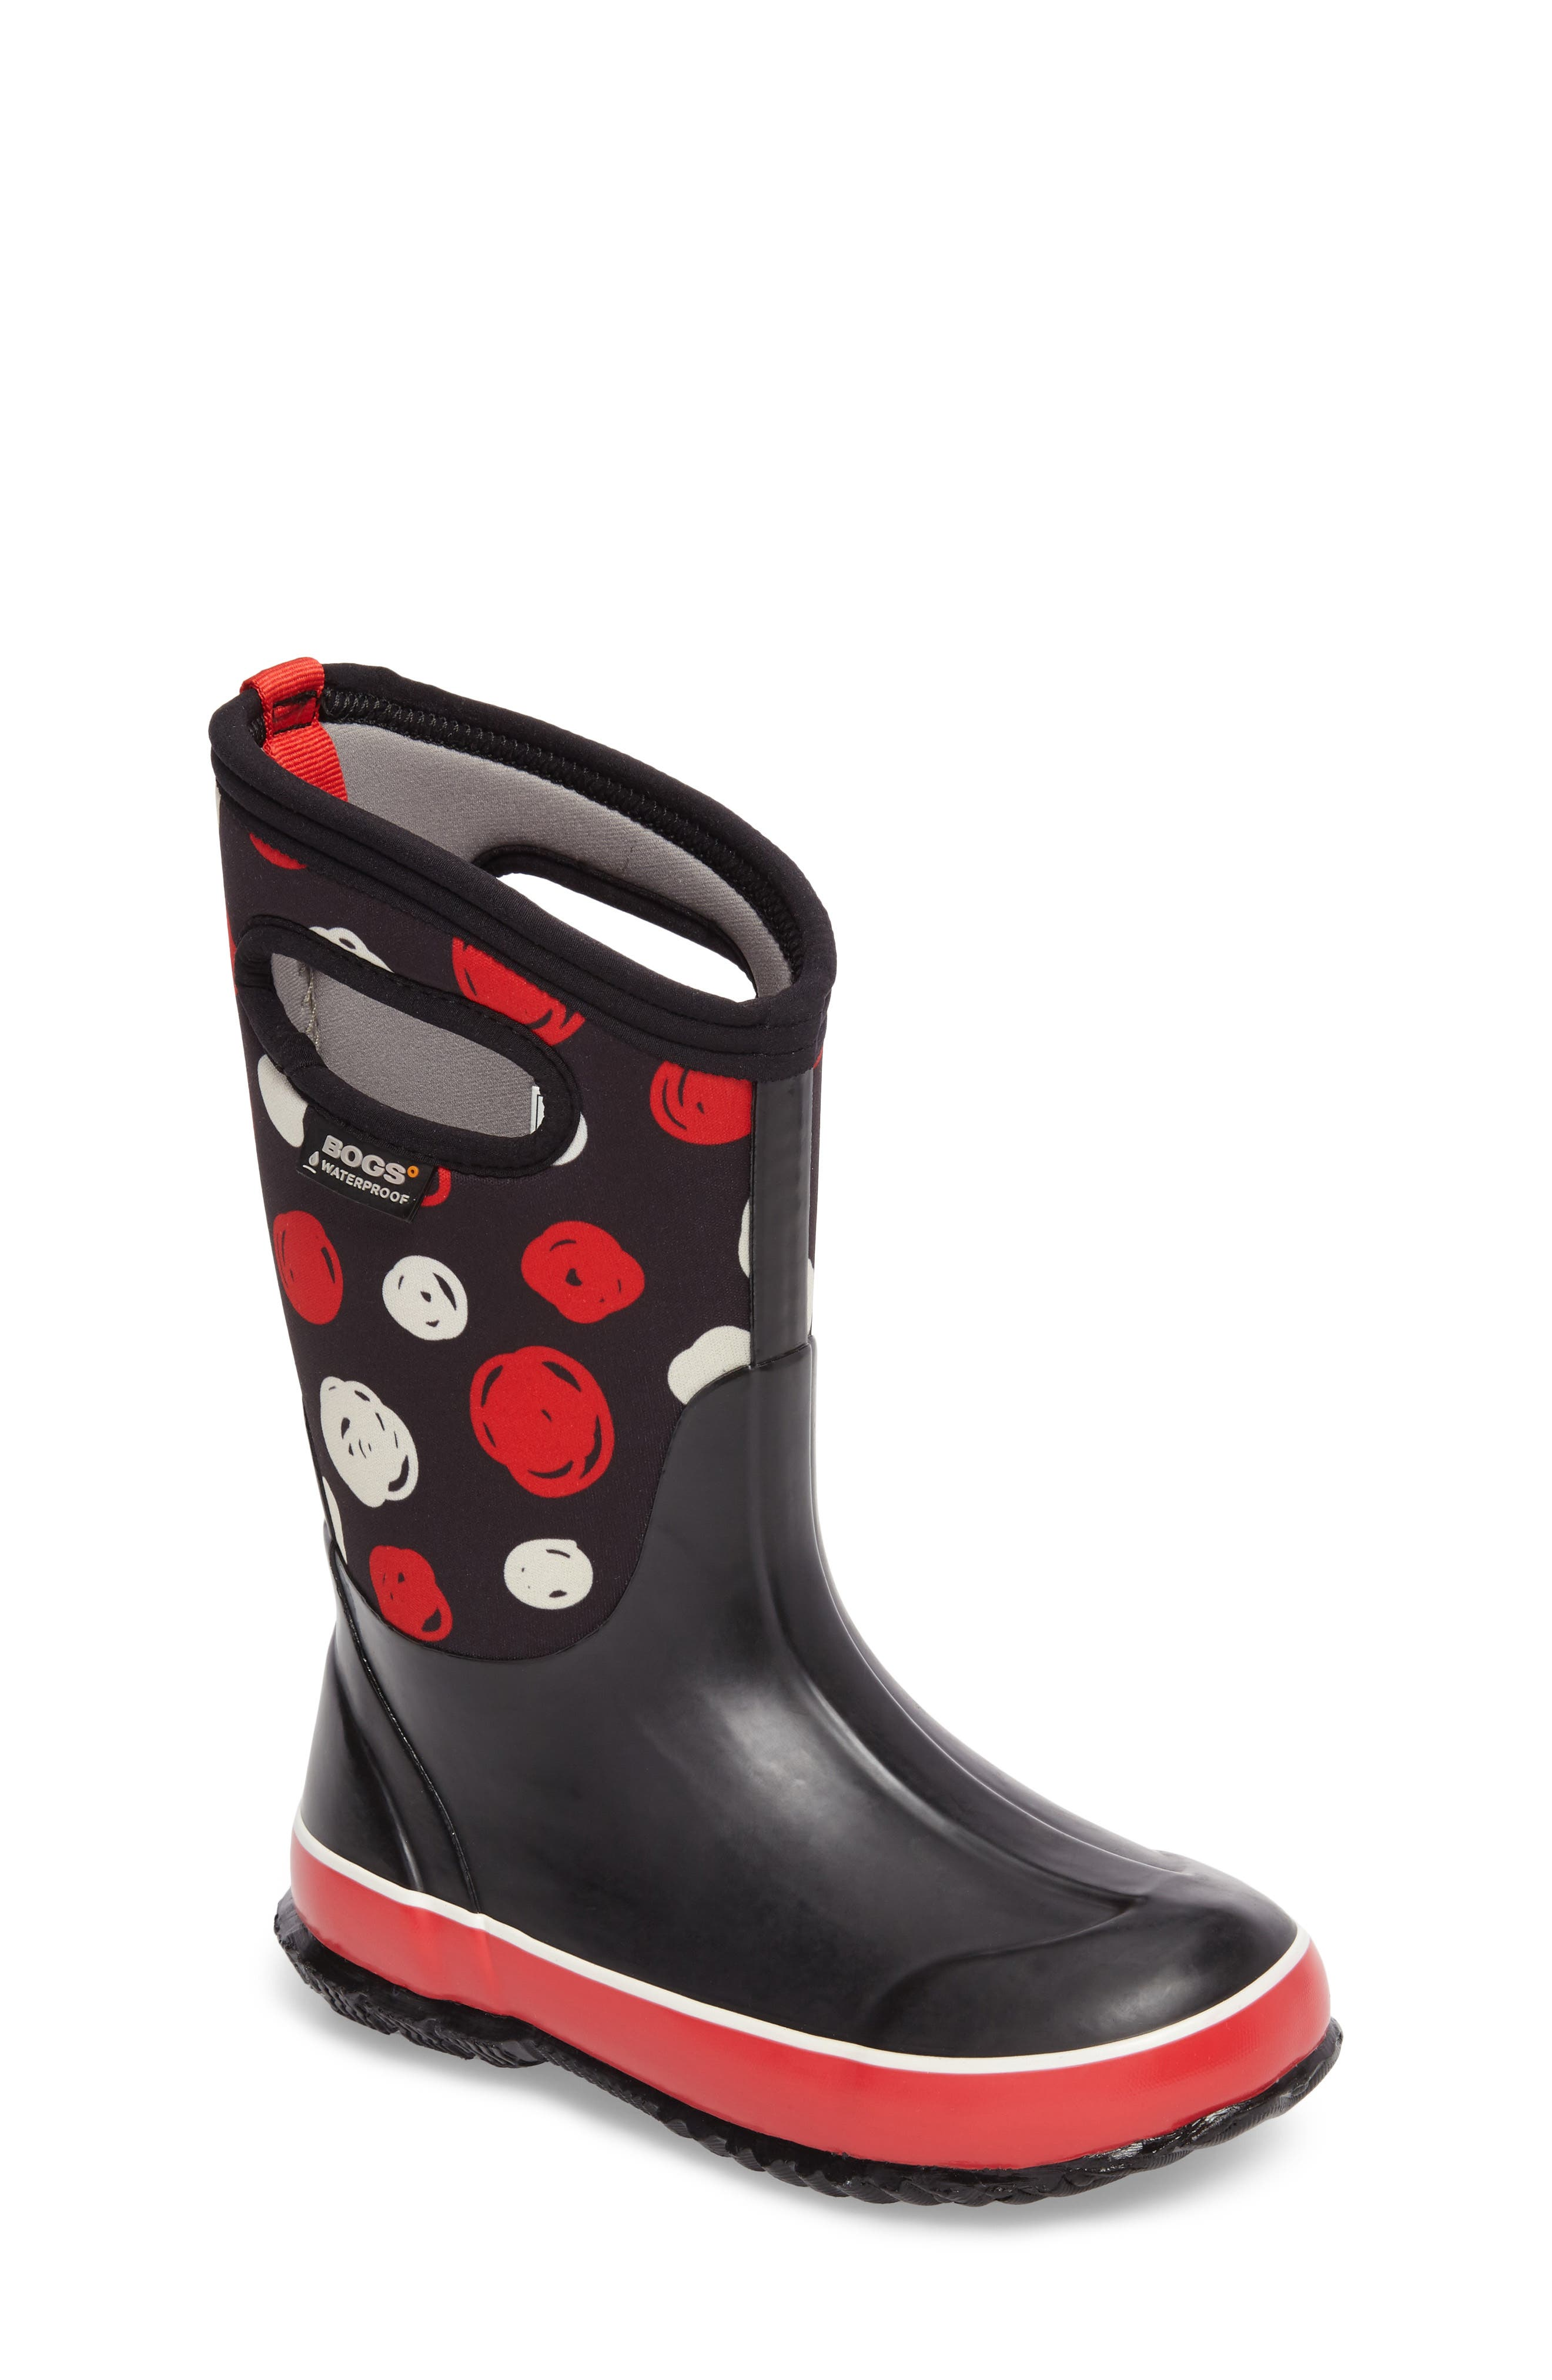 Main Image - Bogs Classic Sketched Dots Insulated Waterproof Boot (Walker, Toddler, Little Kid & Big Kid)